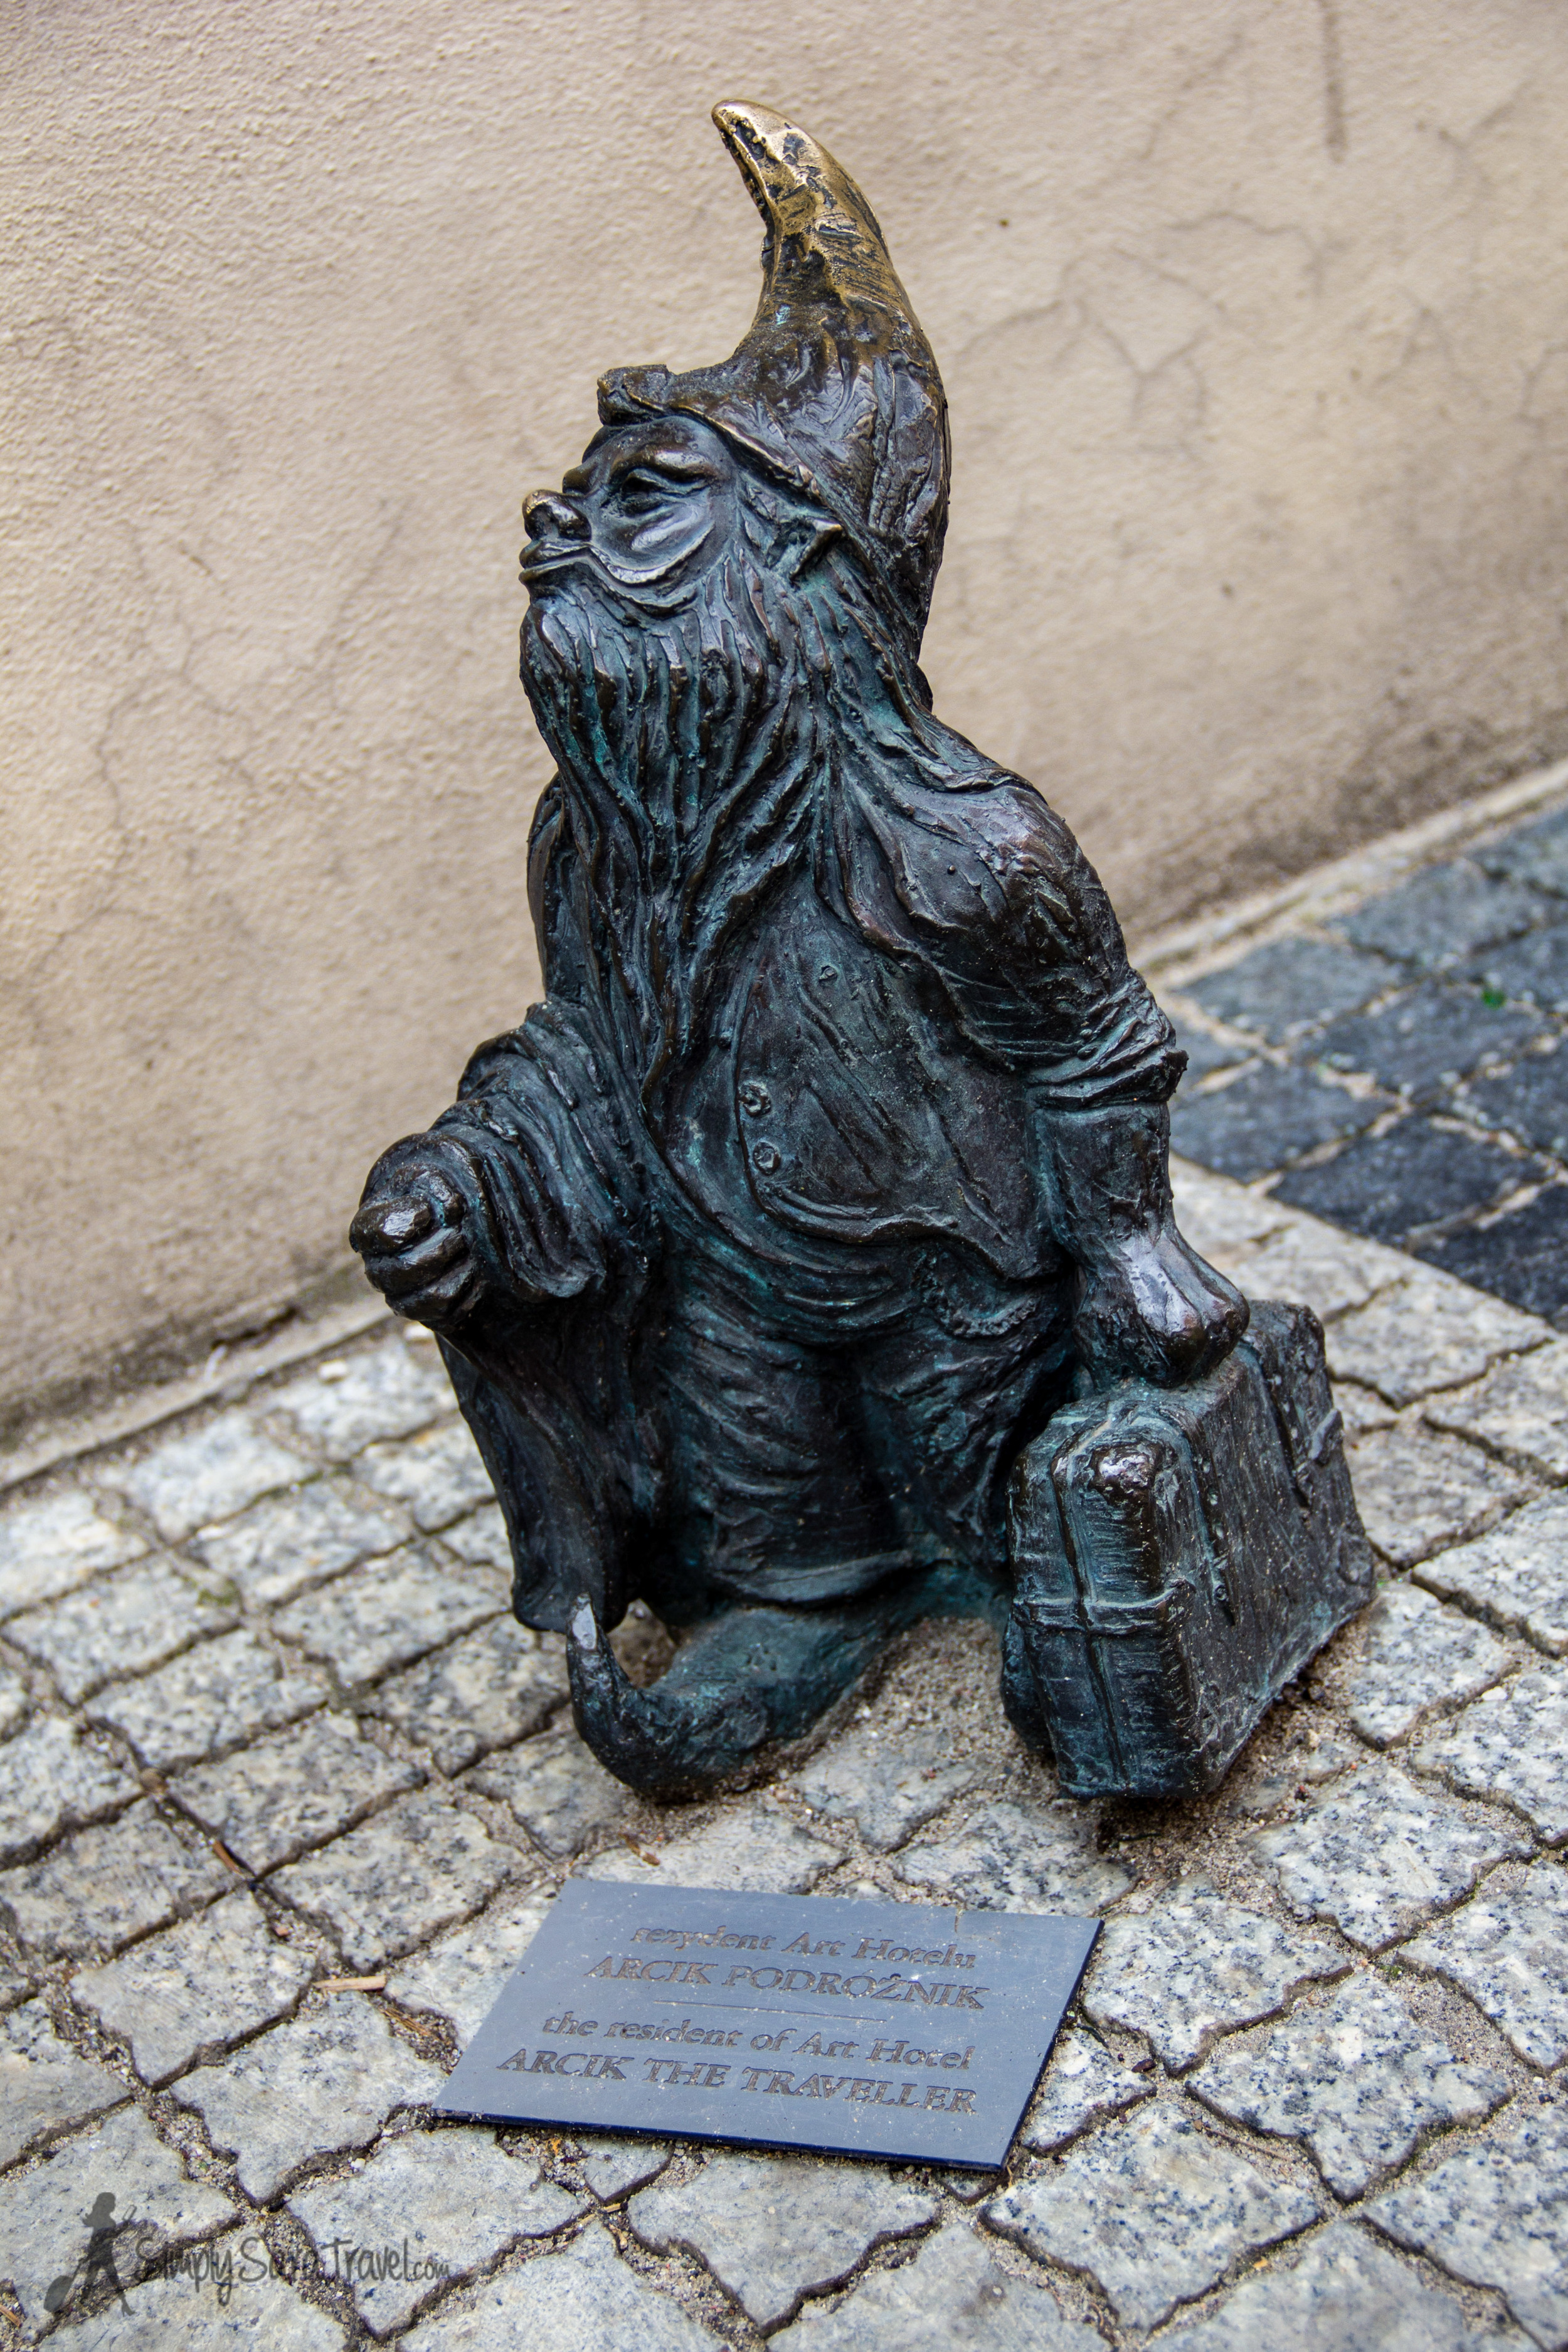 Time to pack your bags and get to Poland! (Yup, these little  gnomes  can show up anywhere!)